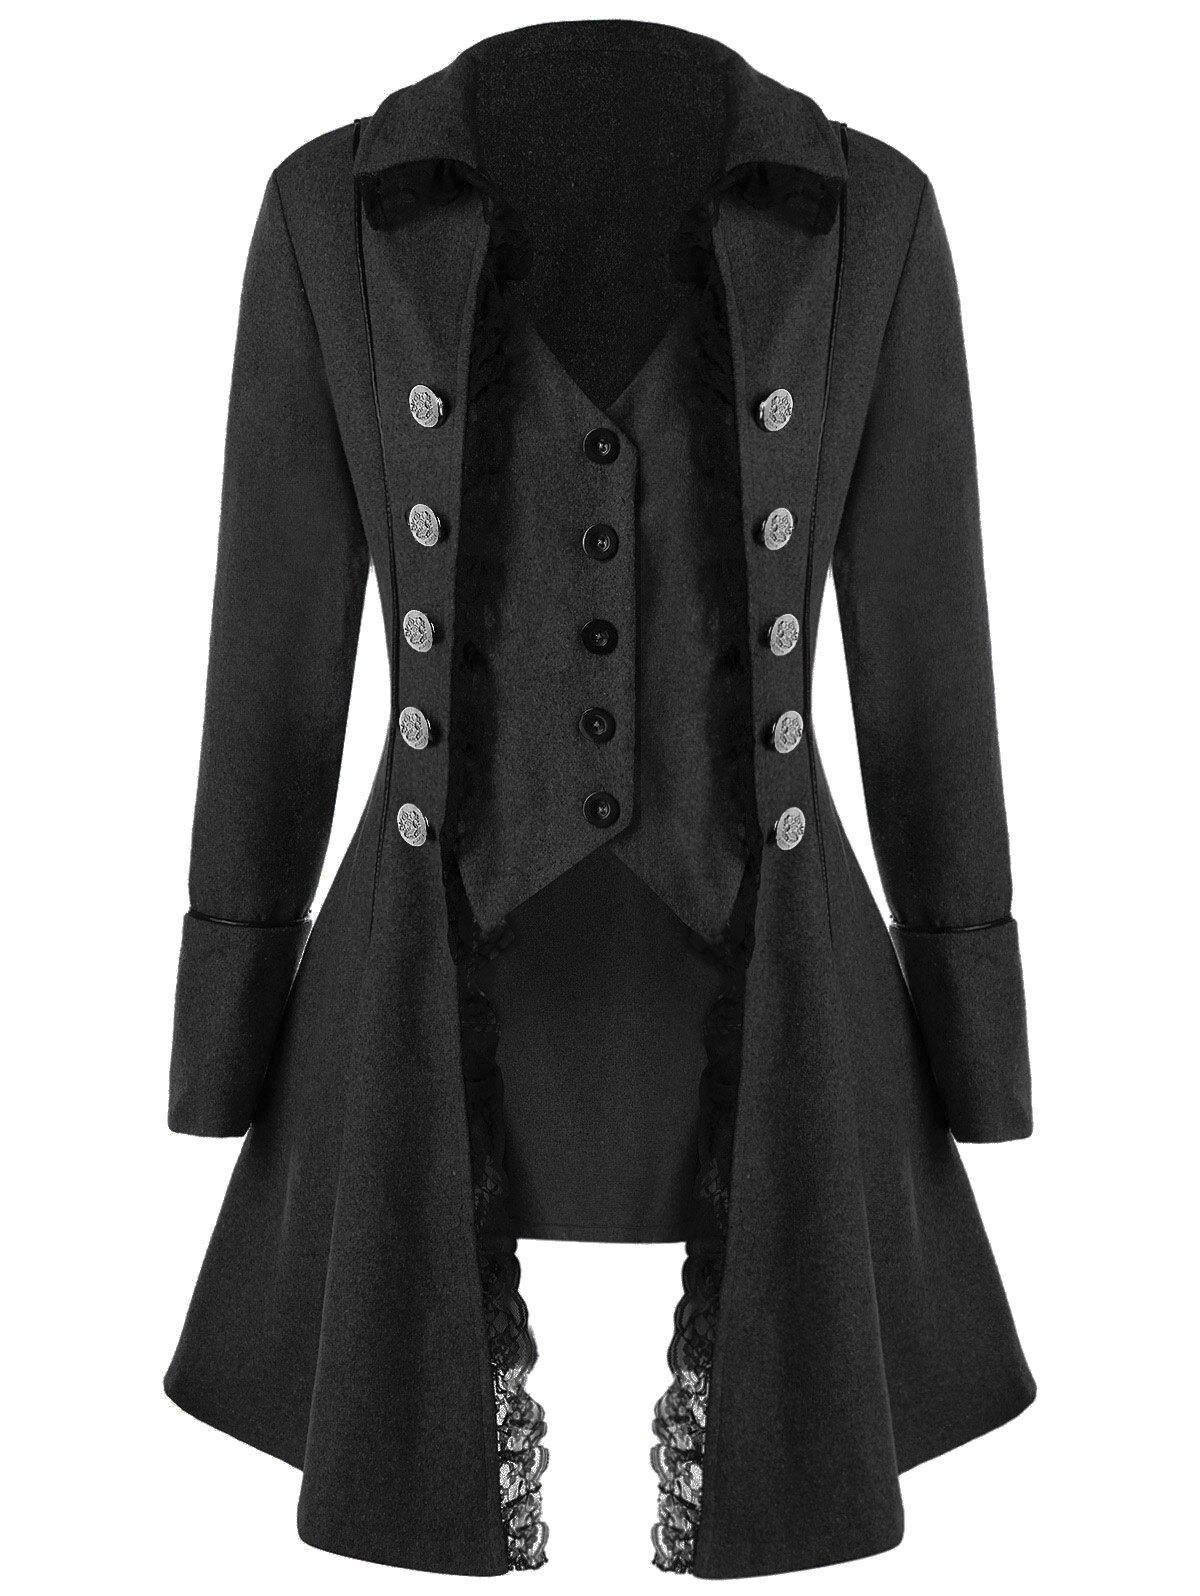 Button Up Lace Trim TailcoatWOMEN<br><br>Size: 2XL; Color: BLACK GREY; Clothes Type: Wool &amp; Blends; Material: Polyester; Type: Slim; Shirt Length: Long; Sleeve Length: Full; Collar: Turn-down Collar; Pattern Type: Solid; Style: Gothic; Season: Fall,Spring; Weight: 0.7300kg; Package Contents: 1 x Coat;